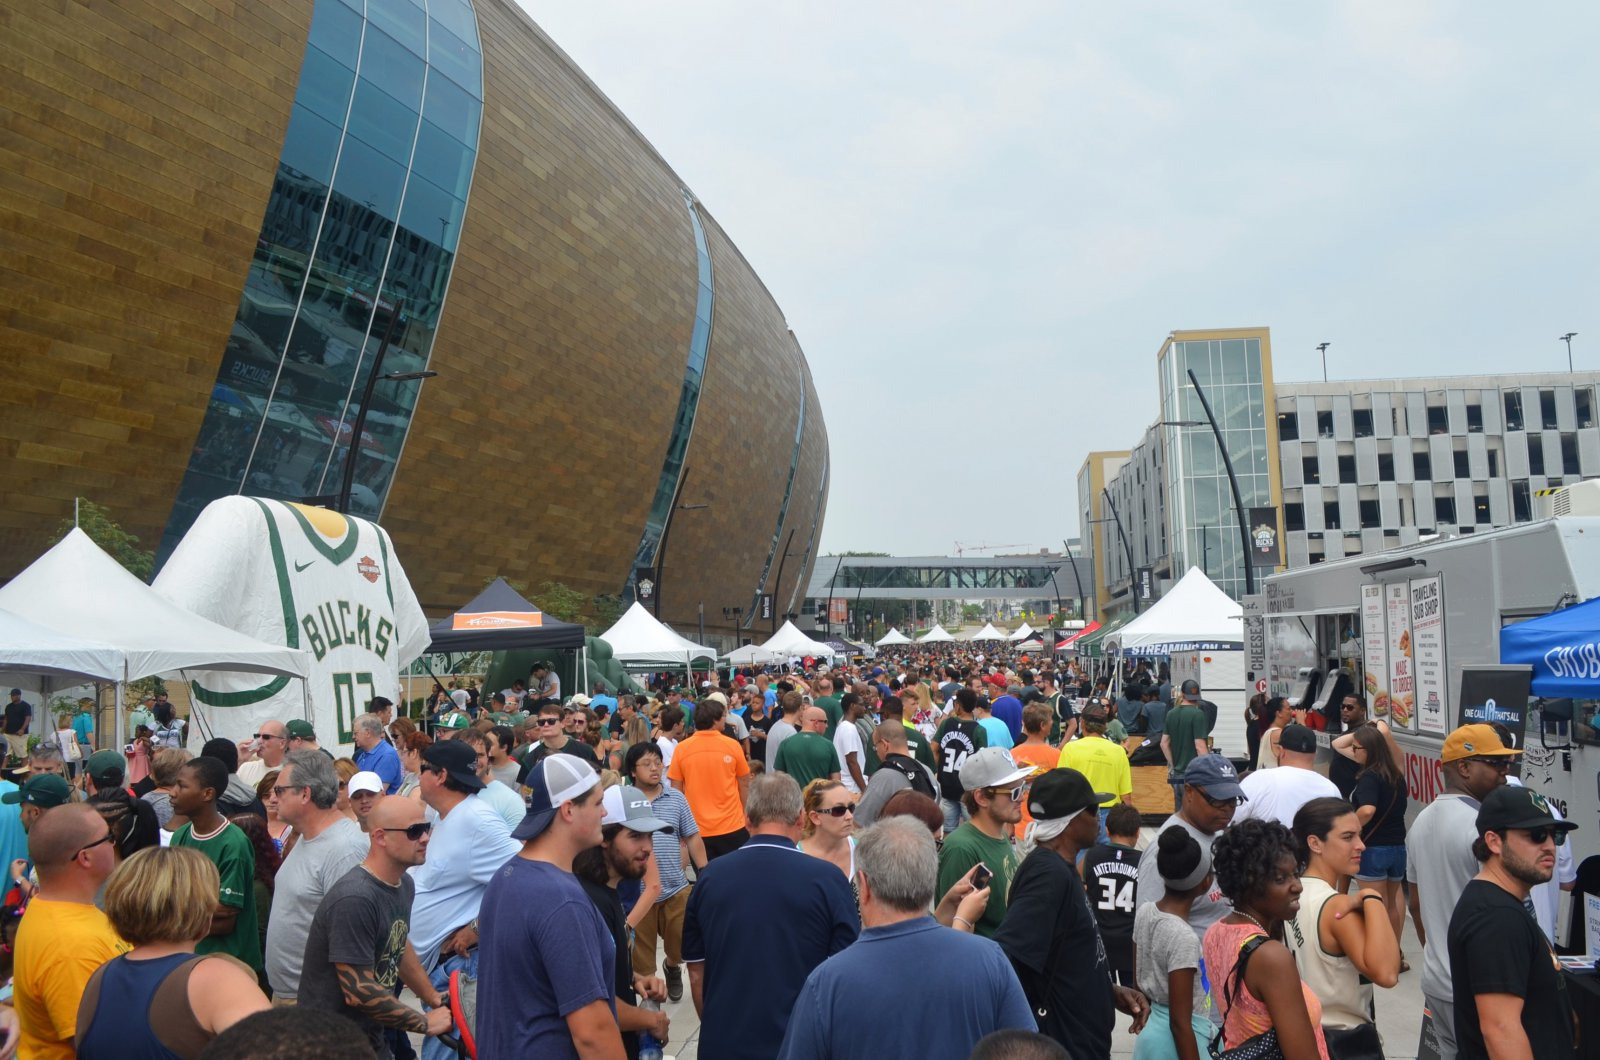 The Fiserv forum during the Milwaukee Bucks annual party block party. Photo by Jack Fennimore.